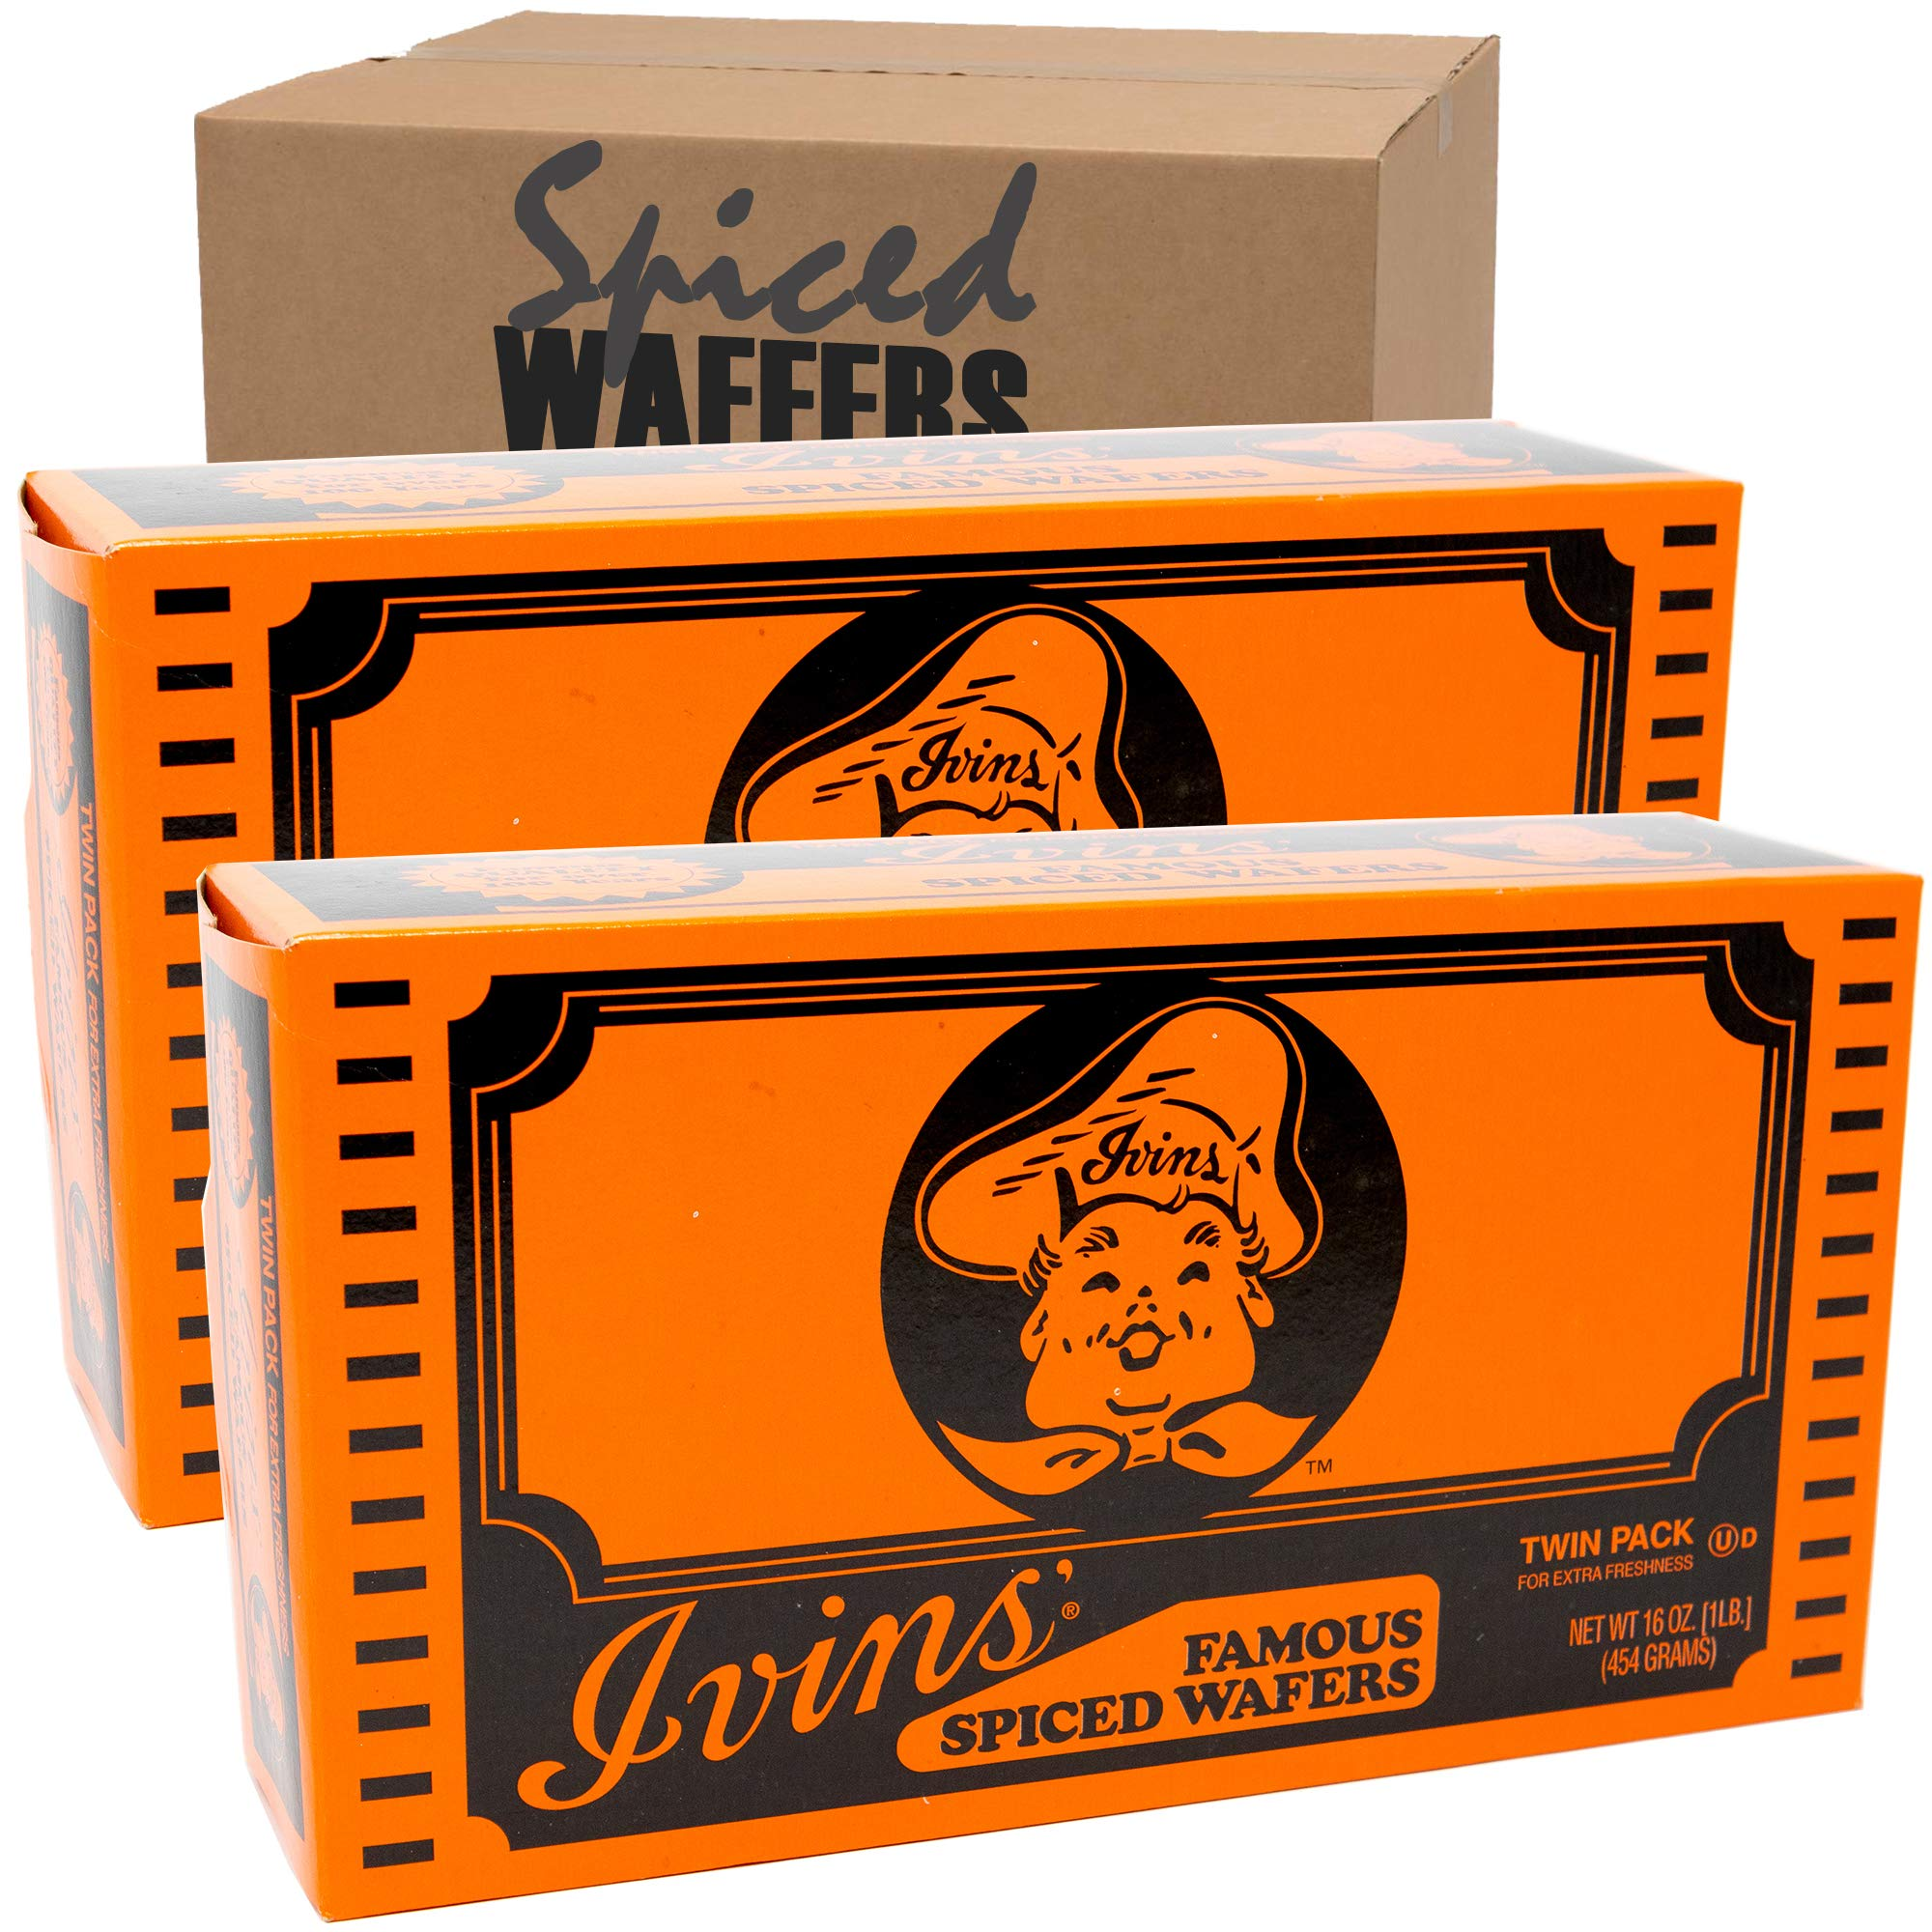 Ivins Famous Spiced Wafers, 2 boxes (16 oz ea.) by